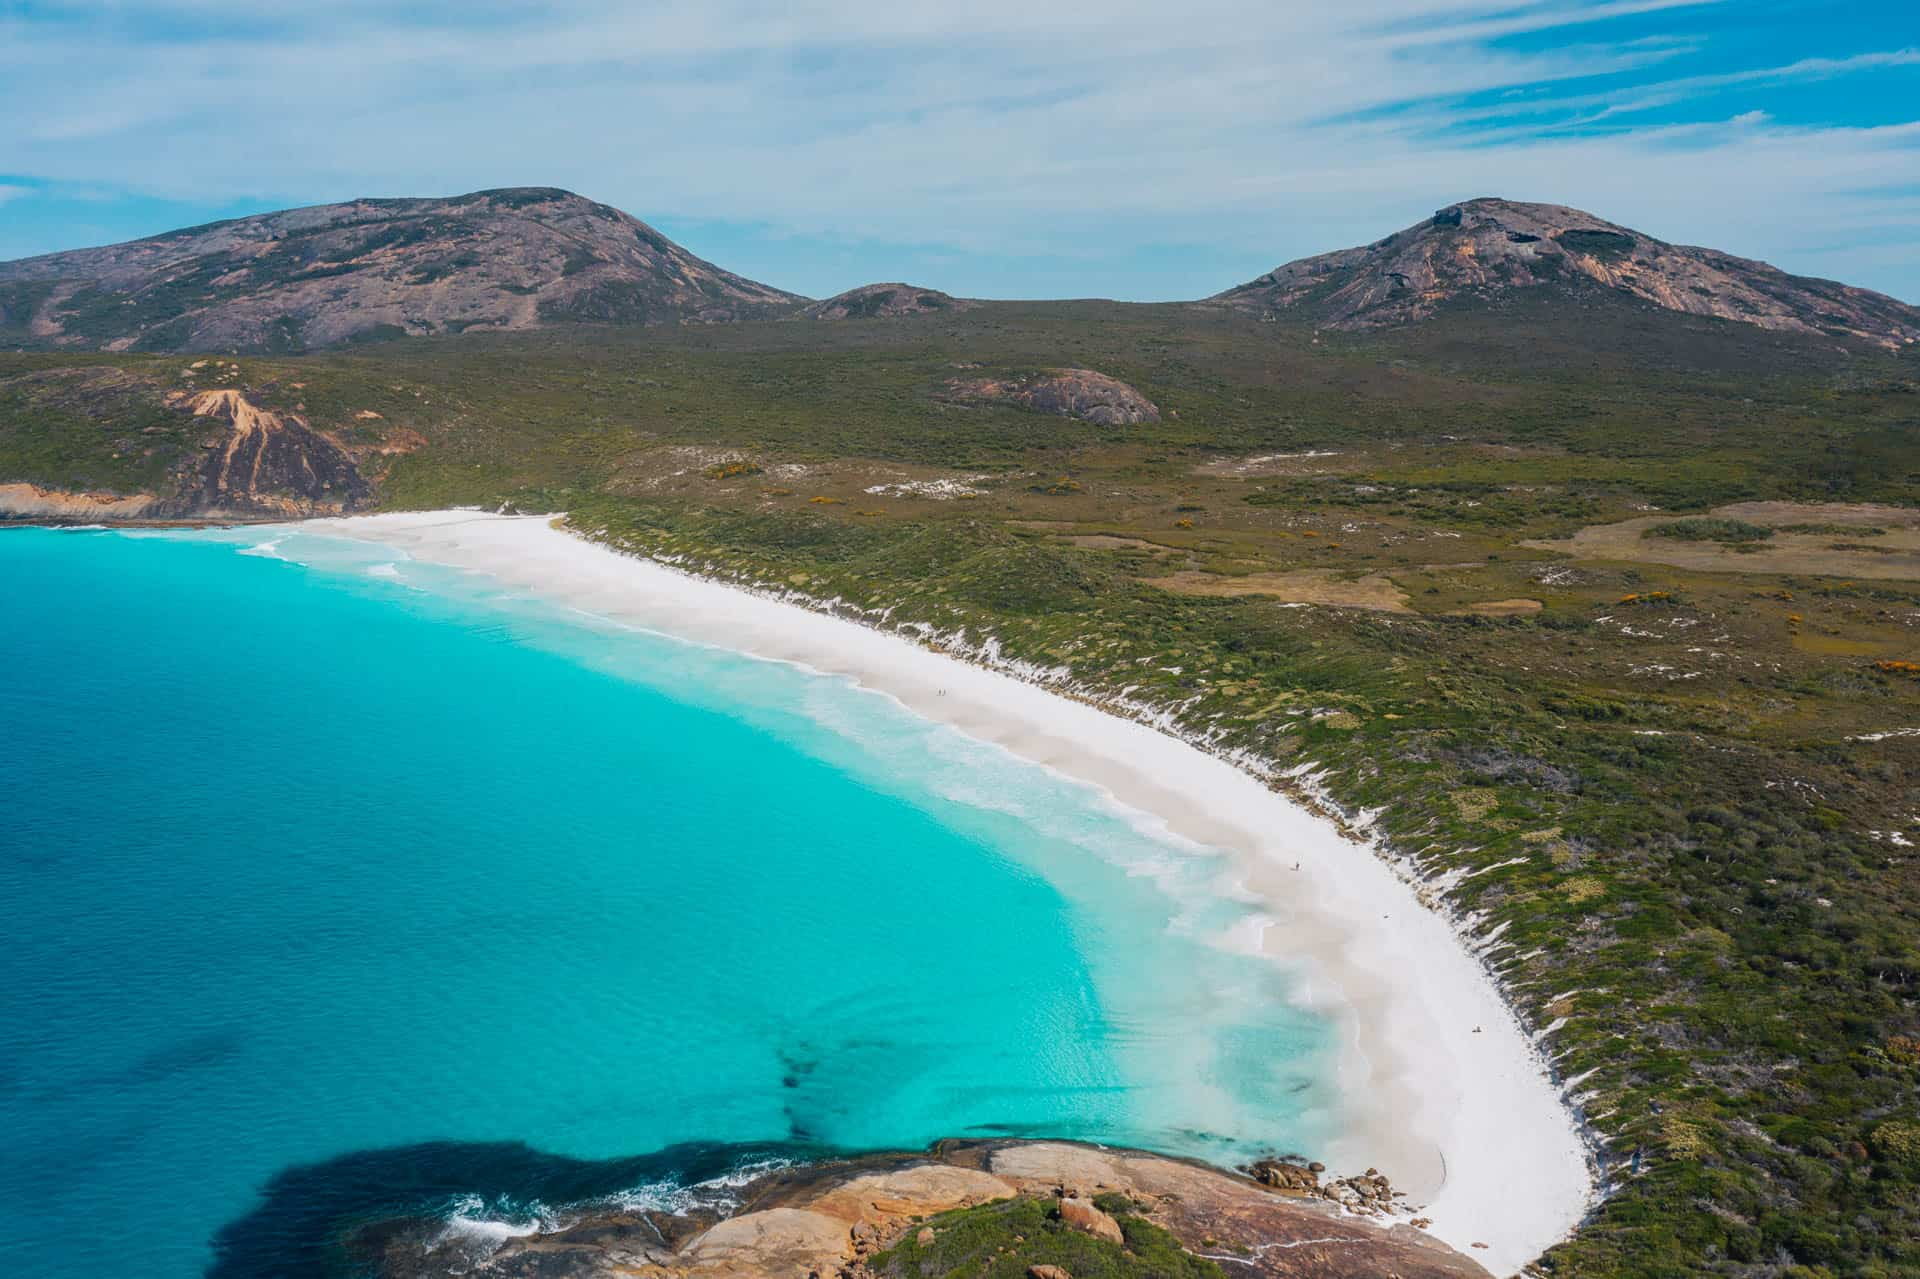 things to do in esperance, what to do in esperance, esperance things to do, esperance attractions, beaches in esperance, hellfire bay, hellfire bay esperance